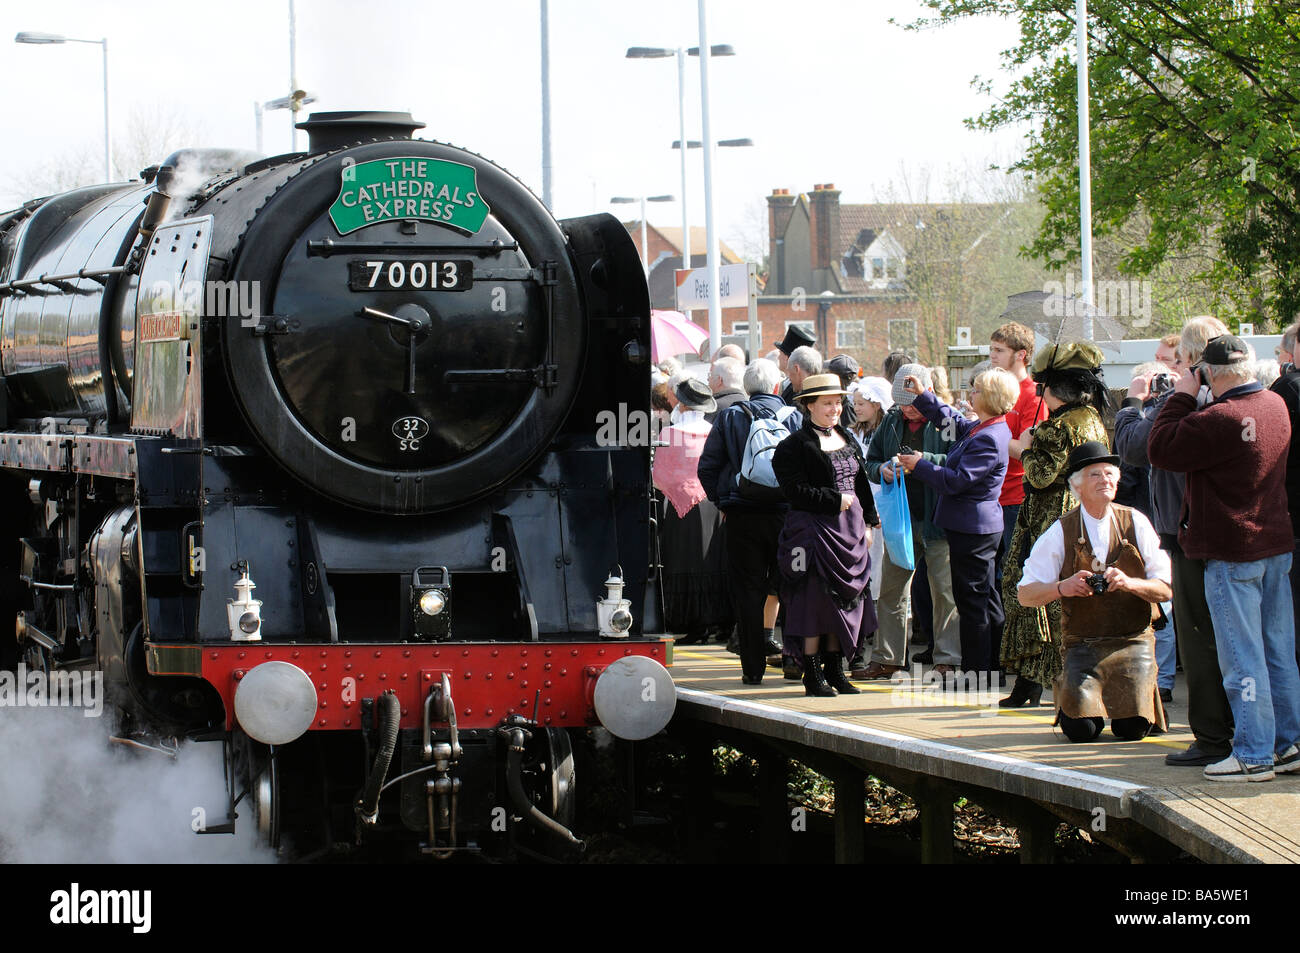 Oliver Cromwell steam engine pulling The Cathedrals Express train into Petersfield railway station crowded platform - Stock Image